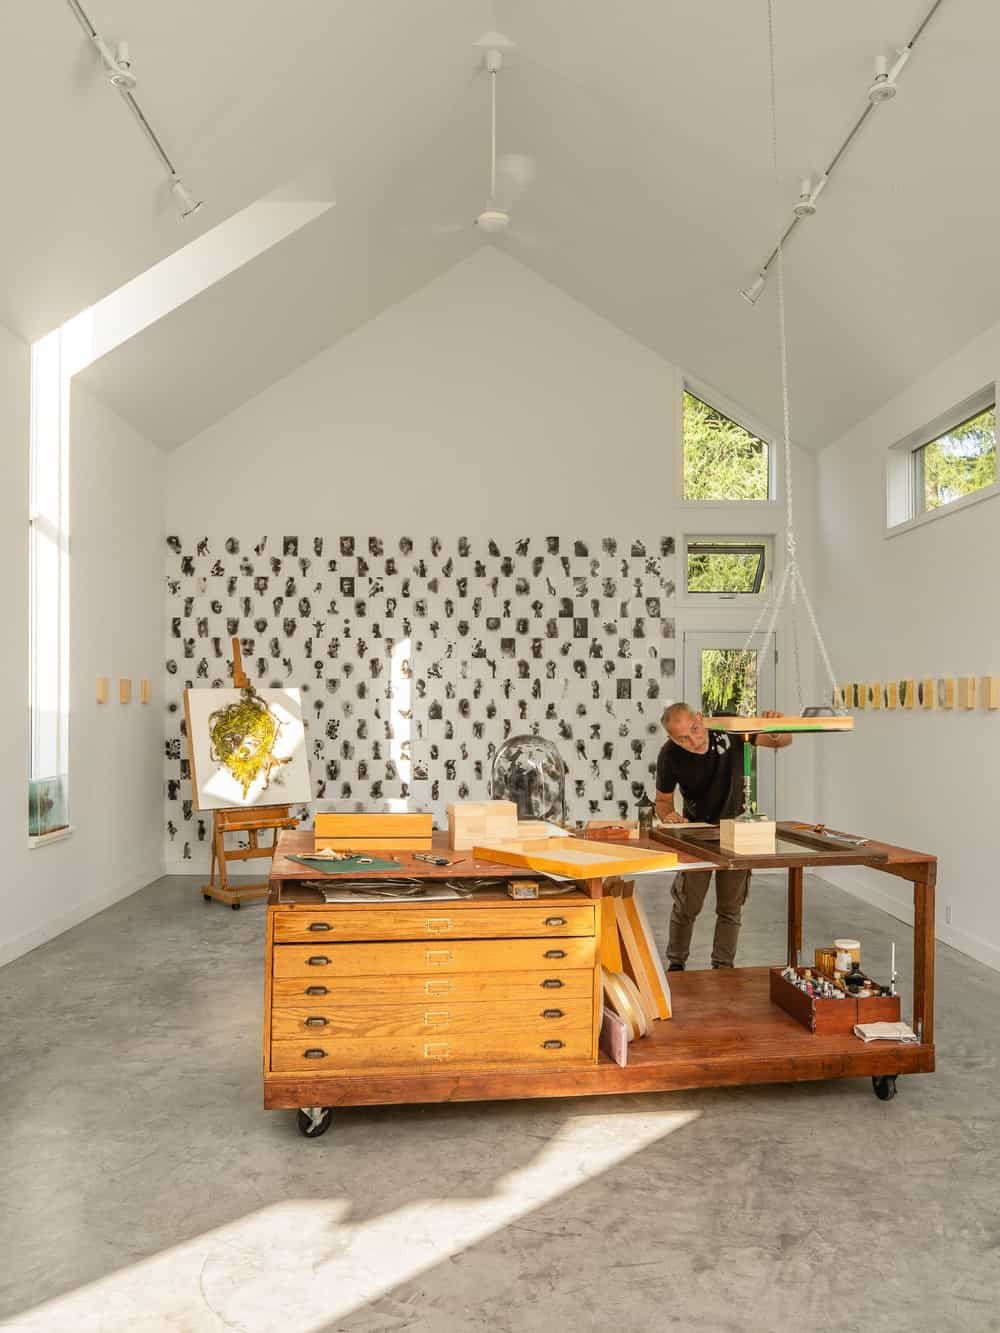 The large area is fitted with a large wooden work desk with wheels and built-in drawers.